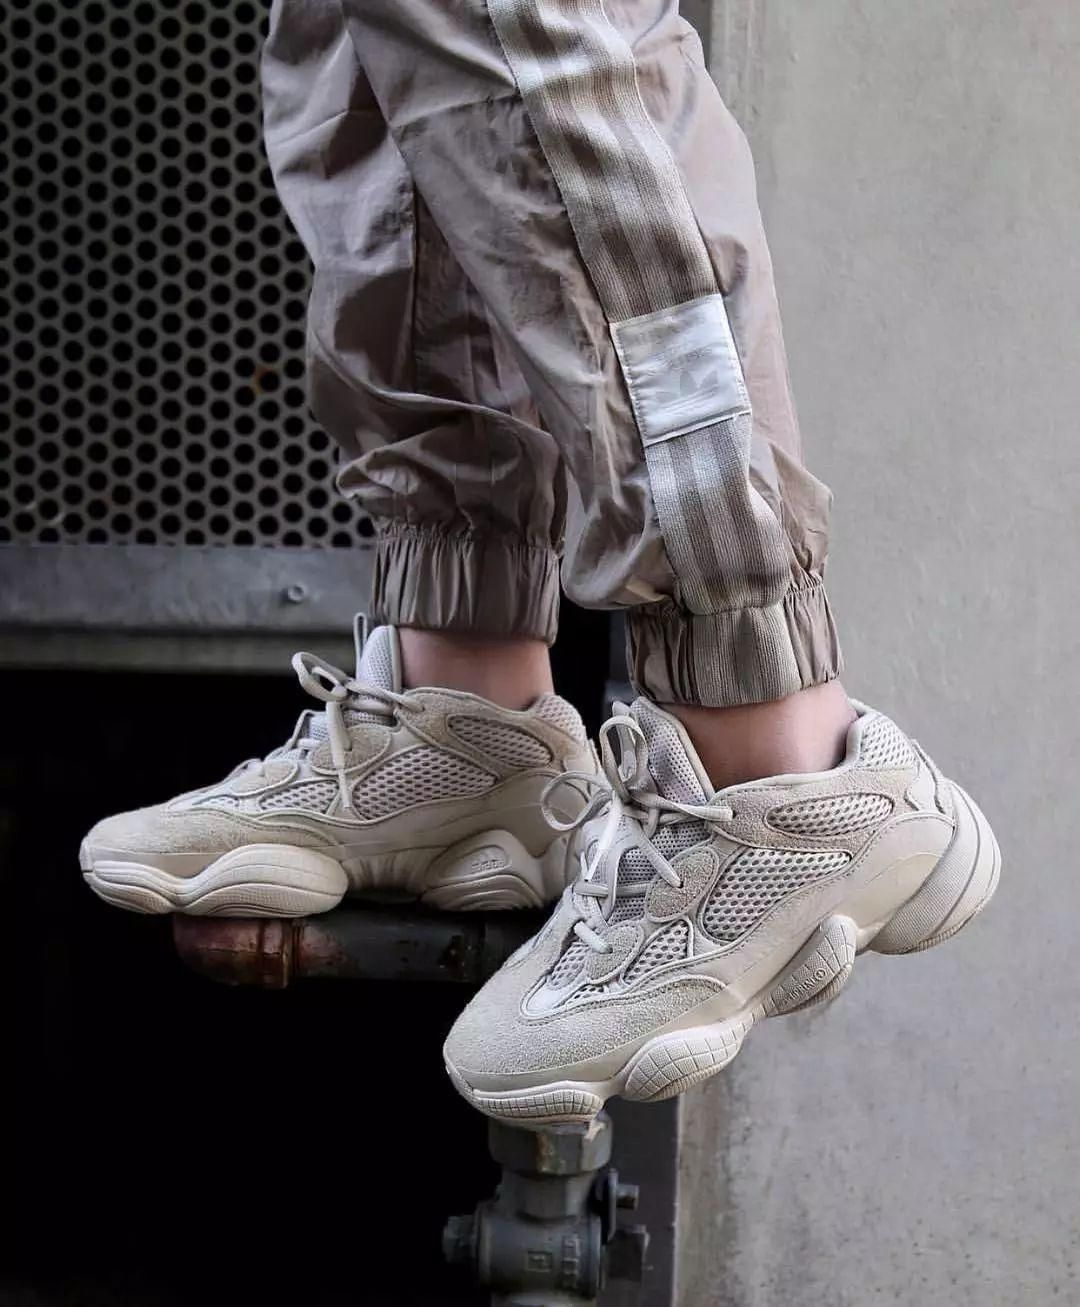 6673a4133 How to get Adidas Yeezy Boost 500 Desert Rat at the best price  sneakers